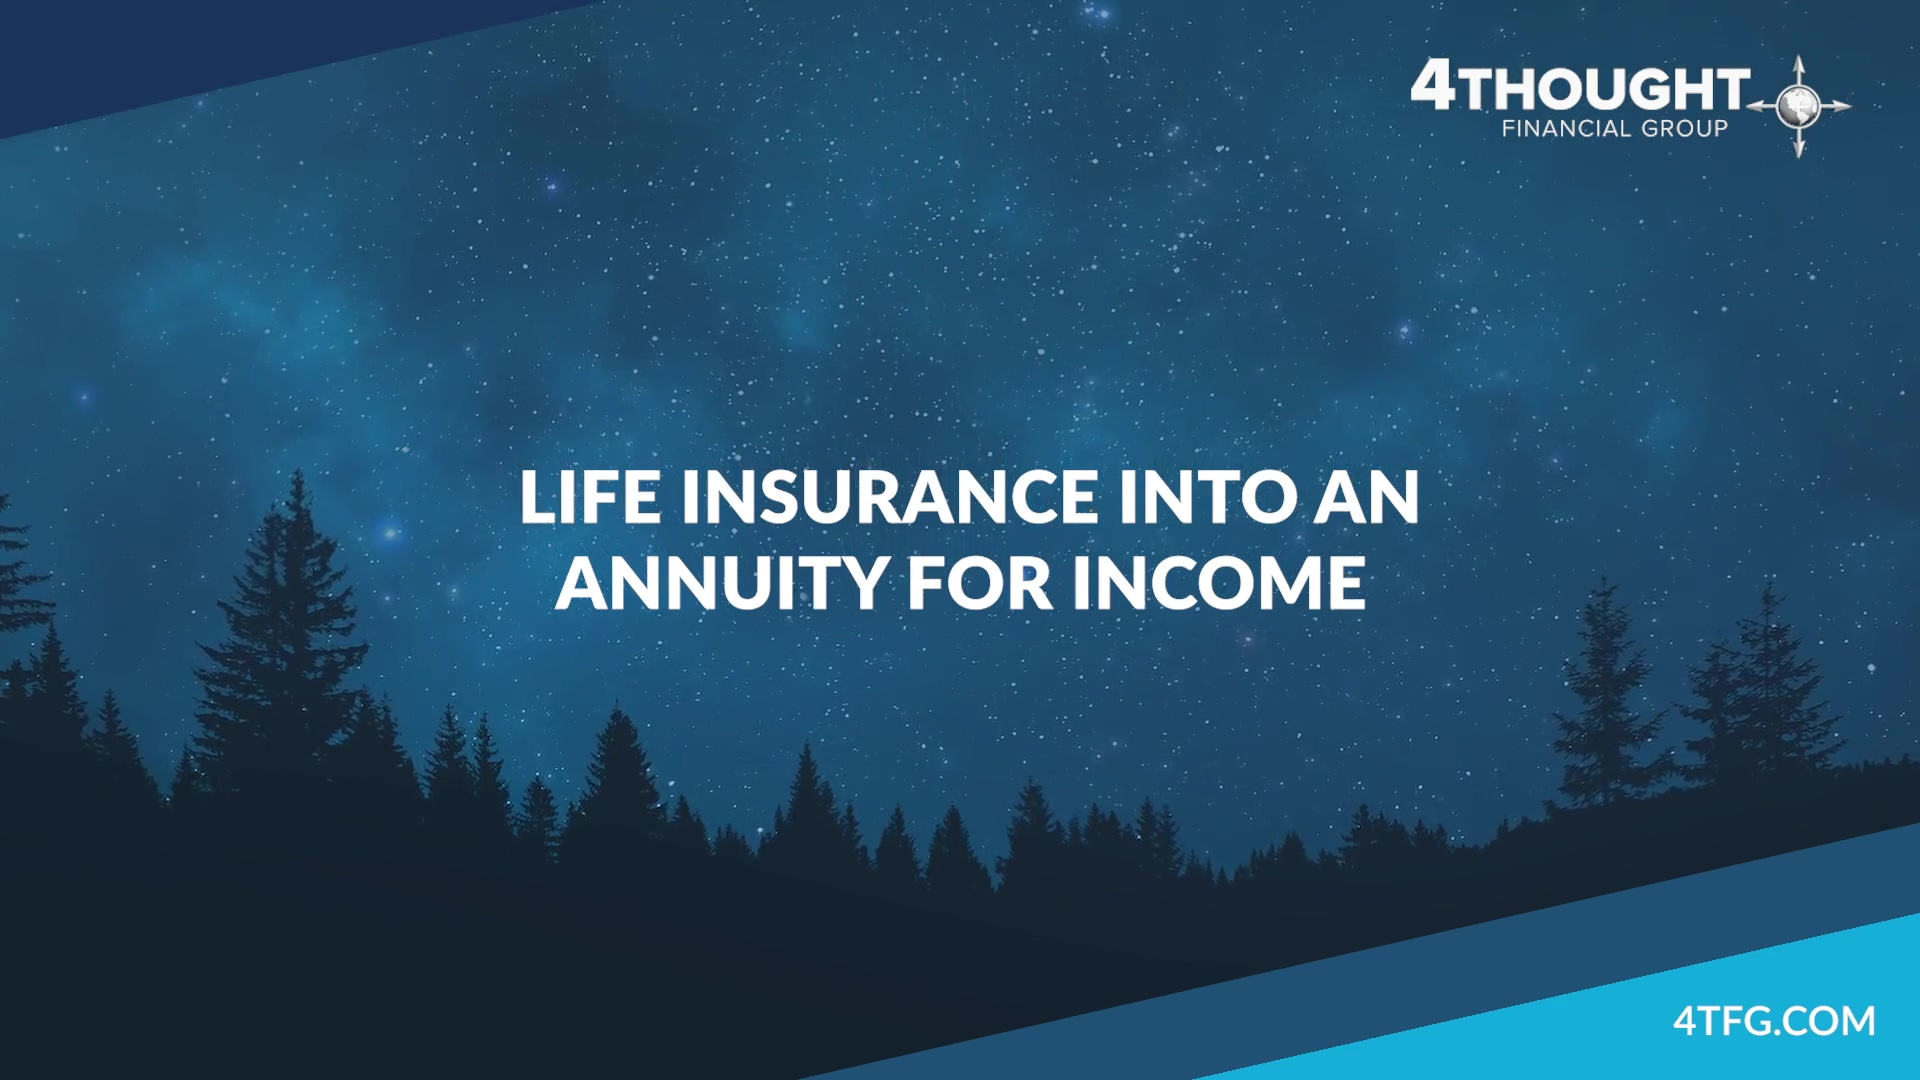 Life Insurance Into an Annuity For Income